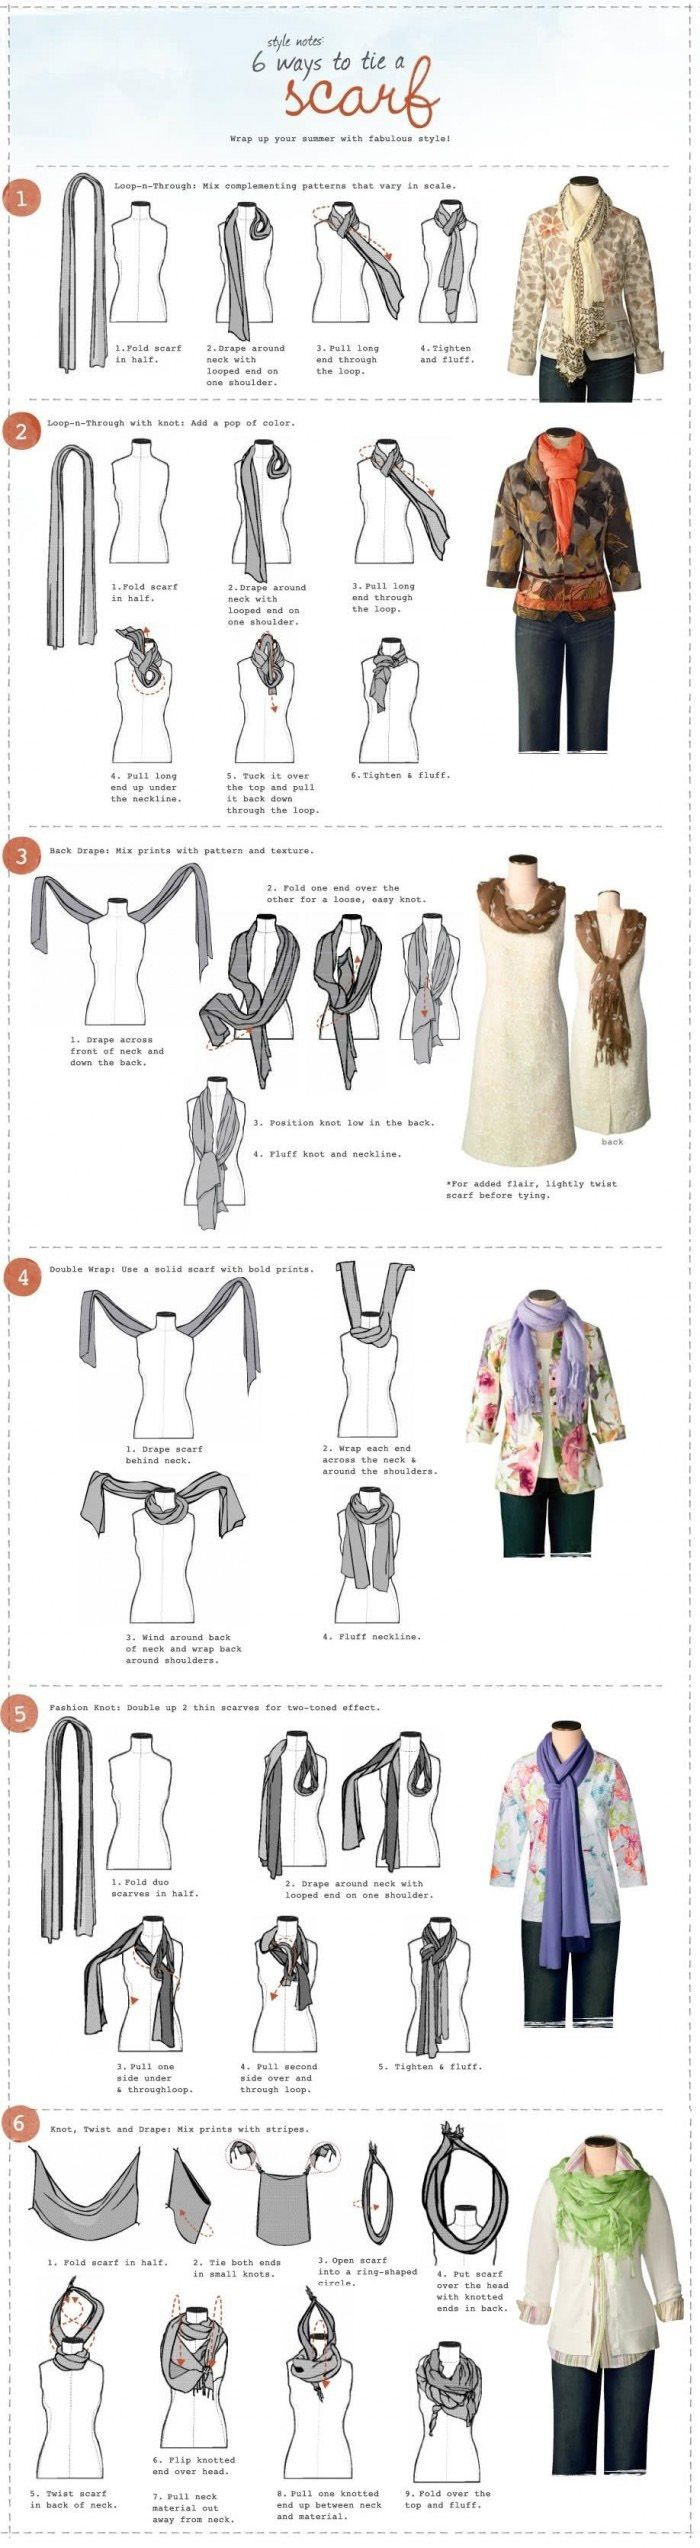 21 incredibly important diagrams to help you get through life rh pinterest com Scarf Tying Printable Flyer Coldwater Creek Scarf Tying